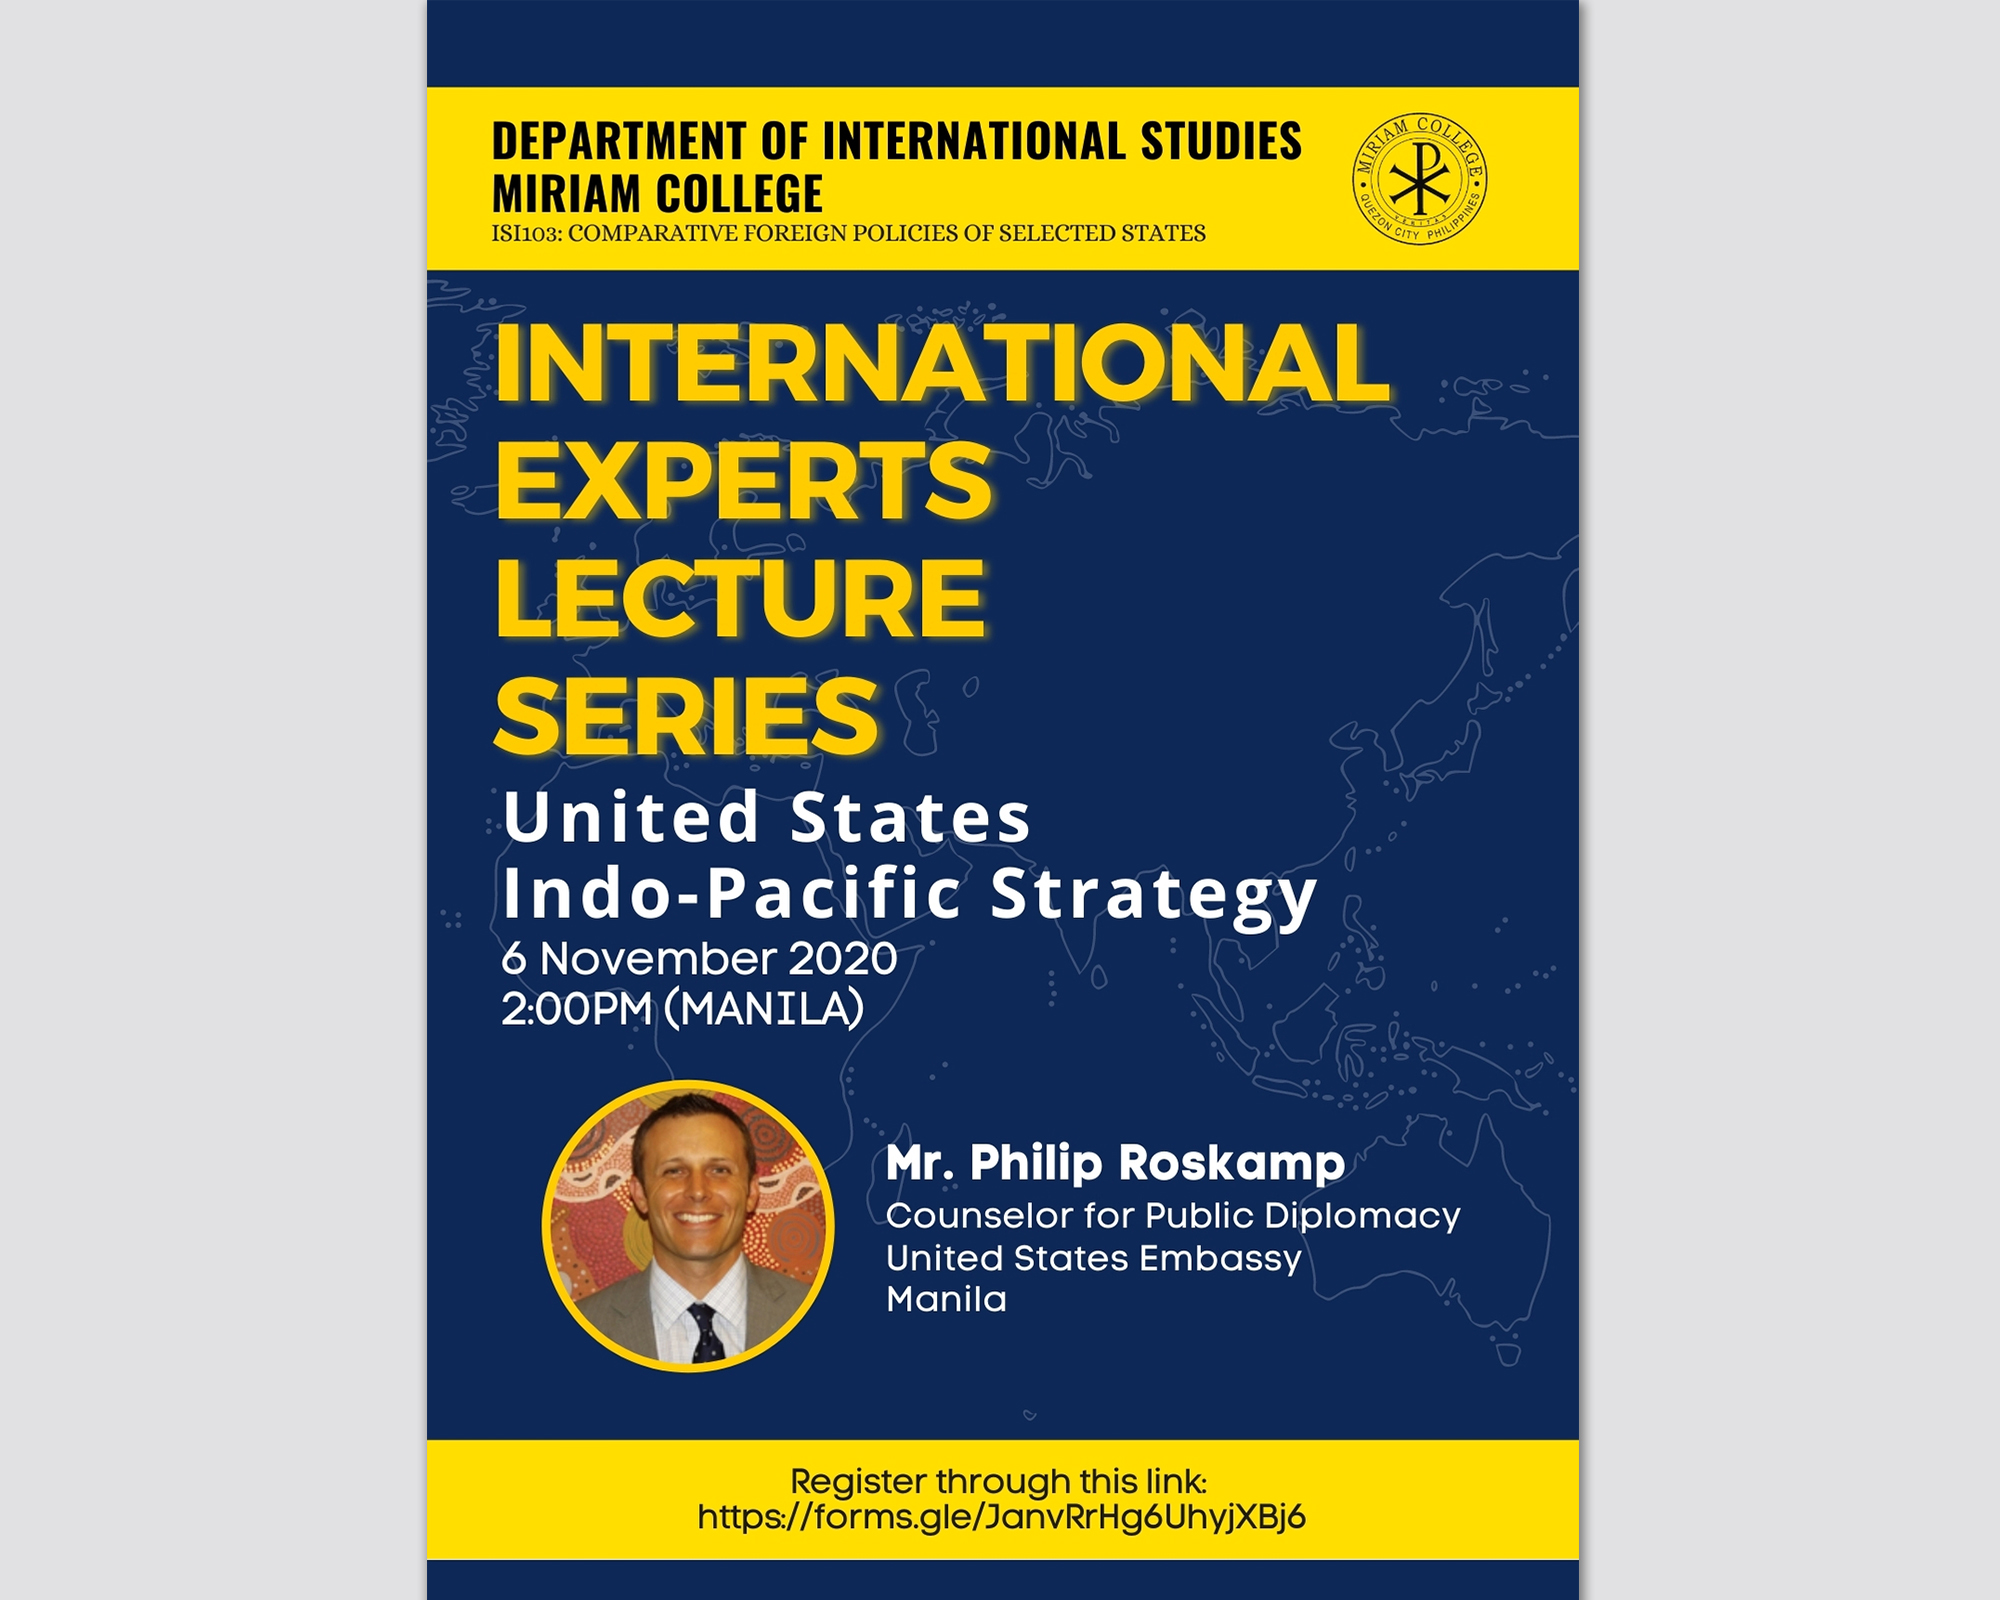 US Indo-Pacific Strategy Takes Center Stage at the MCIS International Experts Lecture Series